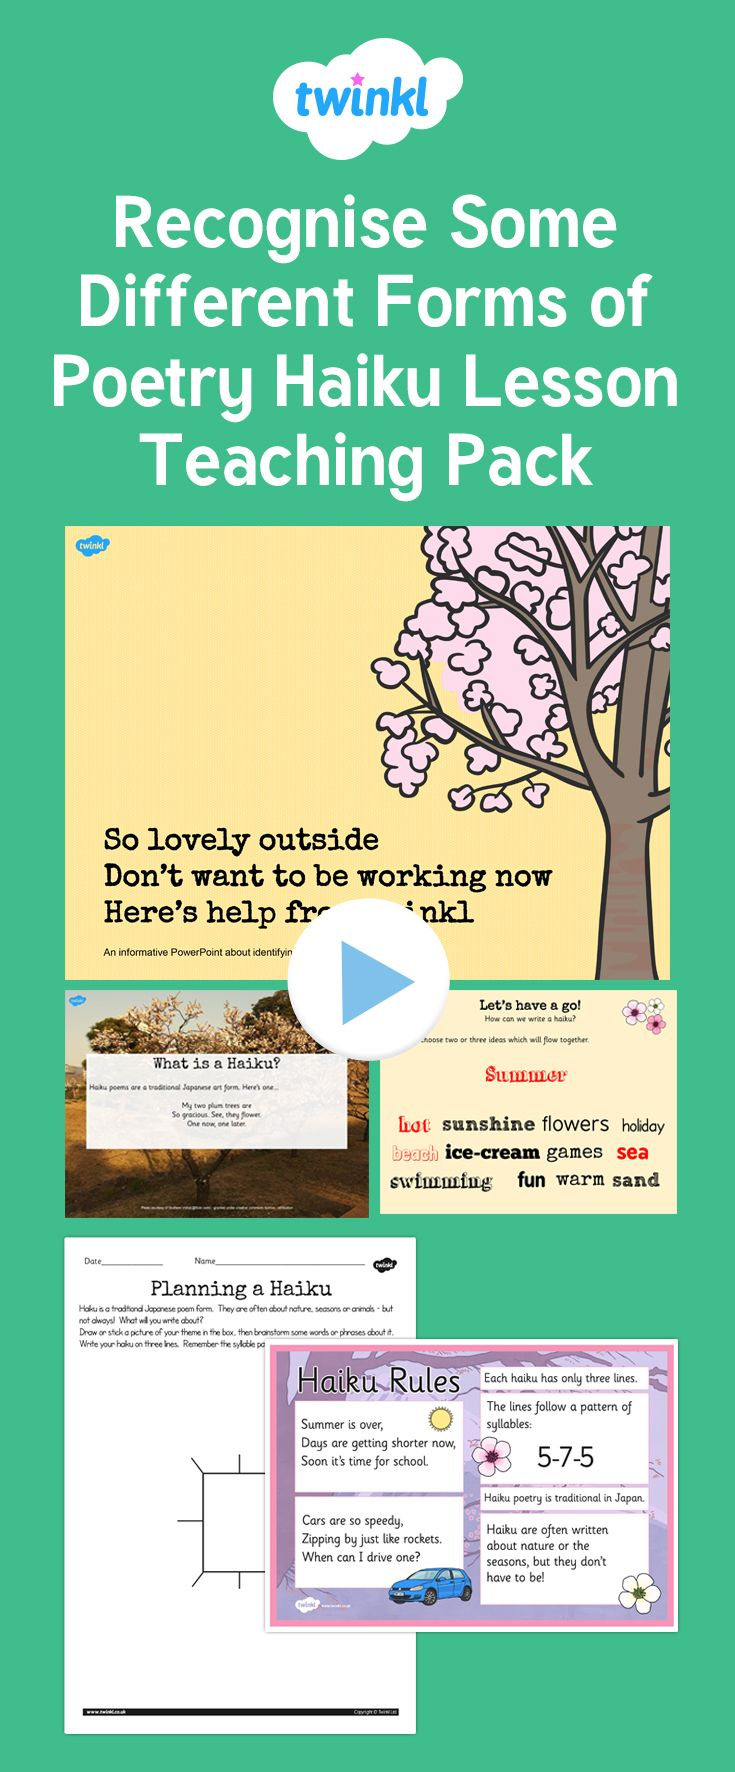 Recognise some different forms of poetry haiku lesson teaching pack trying to write haiku with your class